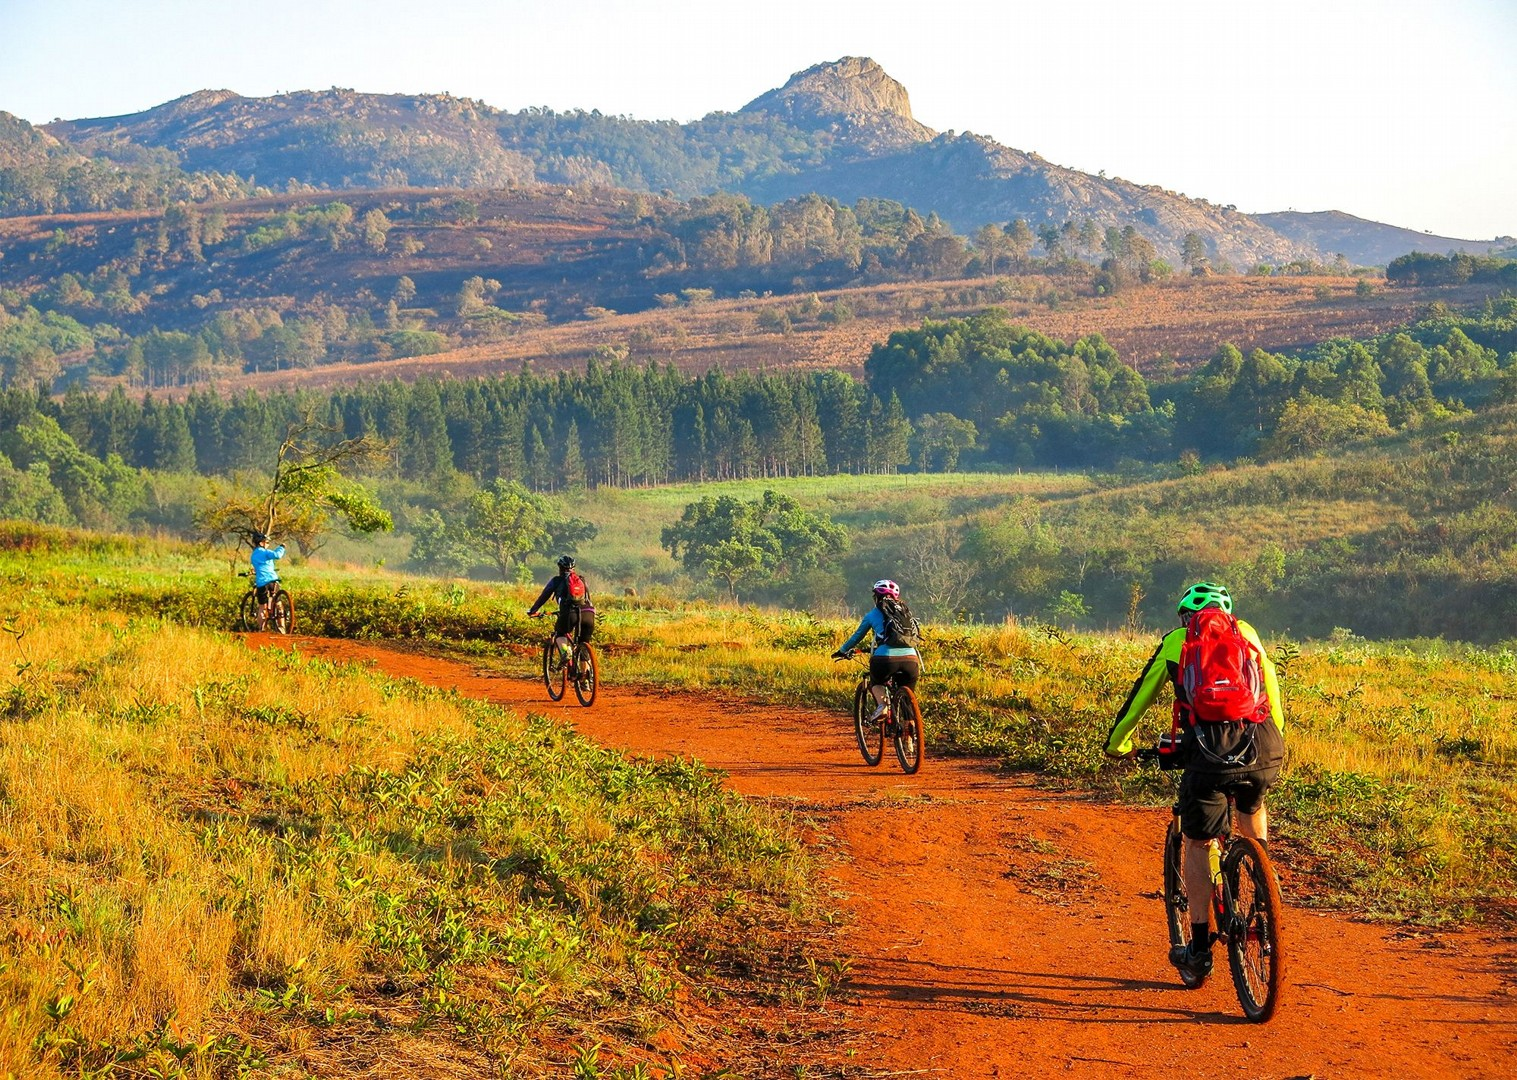 rgfdgfg16.jpg - Eswatini (Swaziland) - Cycling Safari - Cycling Adventures